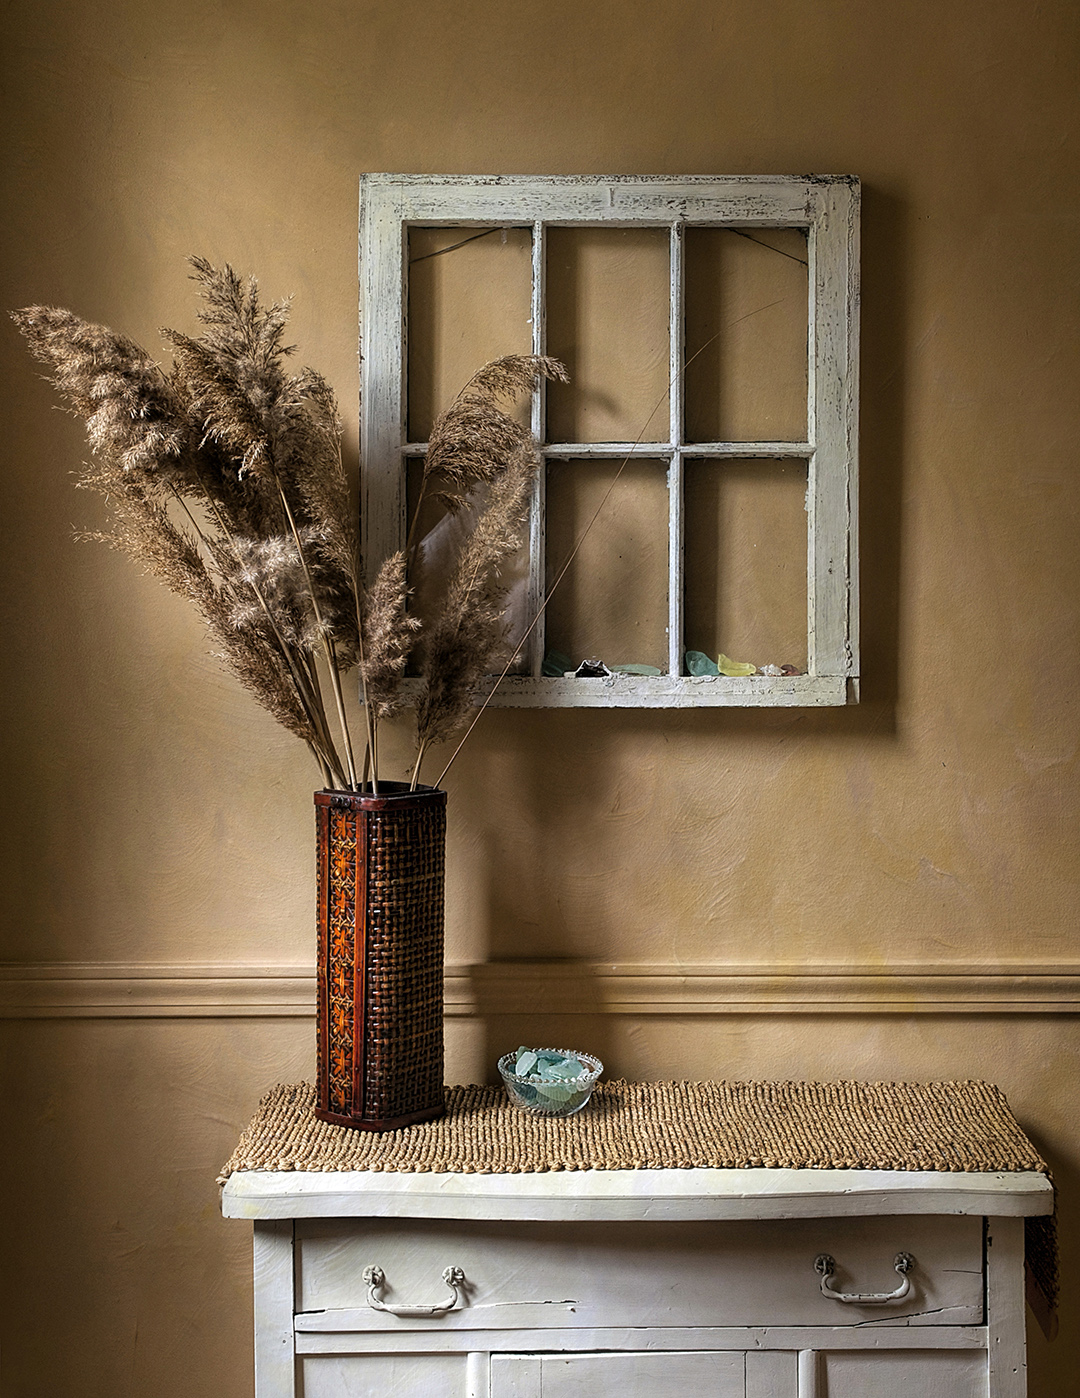 Brick-colored vase filled with ivory pampas grass on top of a white side table, antique window hanging on wall behind